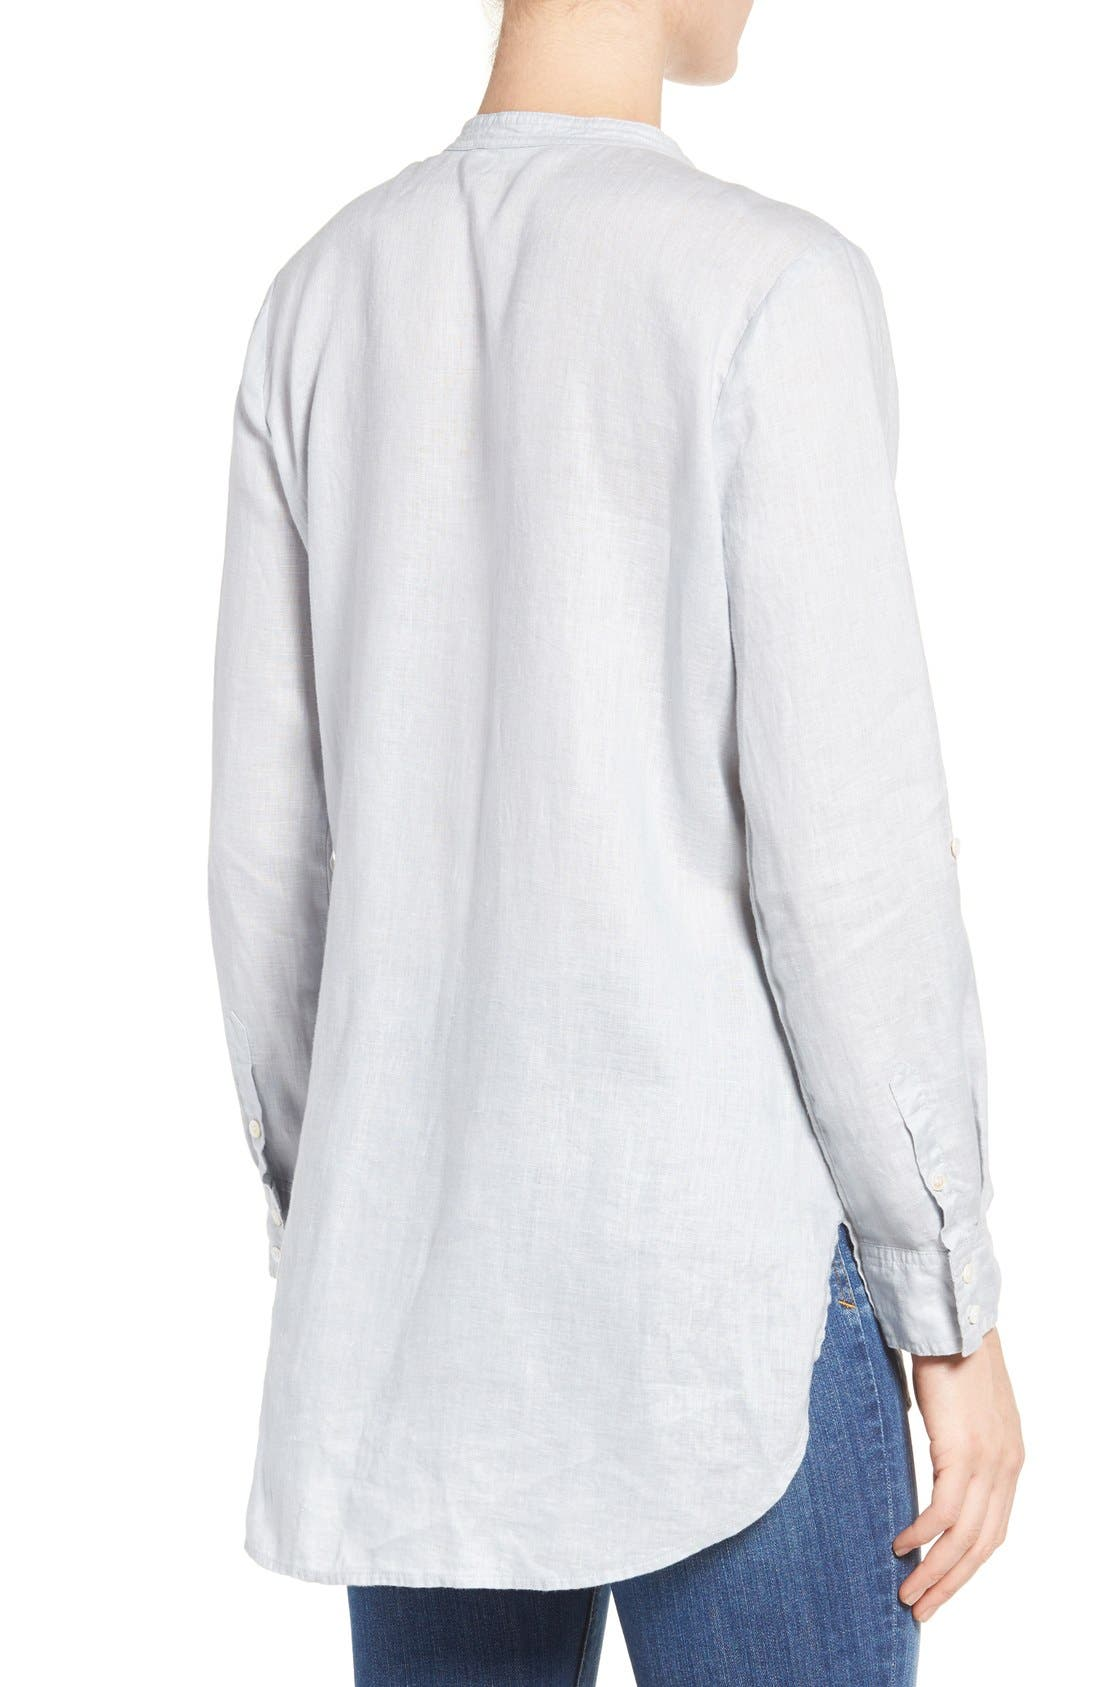 Two by Vince Camuto Collarless Linen Shirt,                             Main thumbnail 1, color,                             026